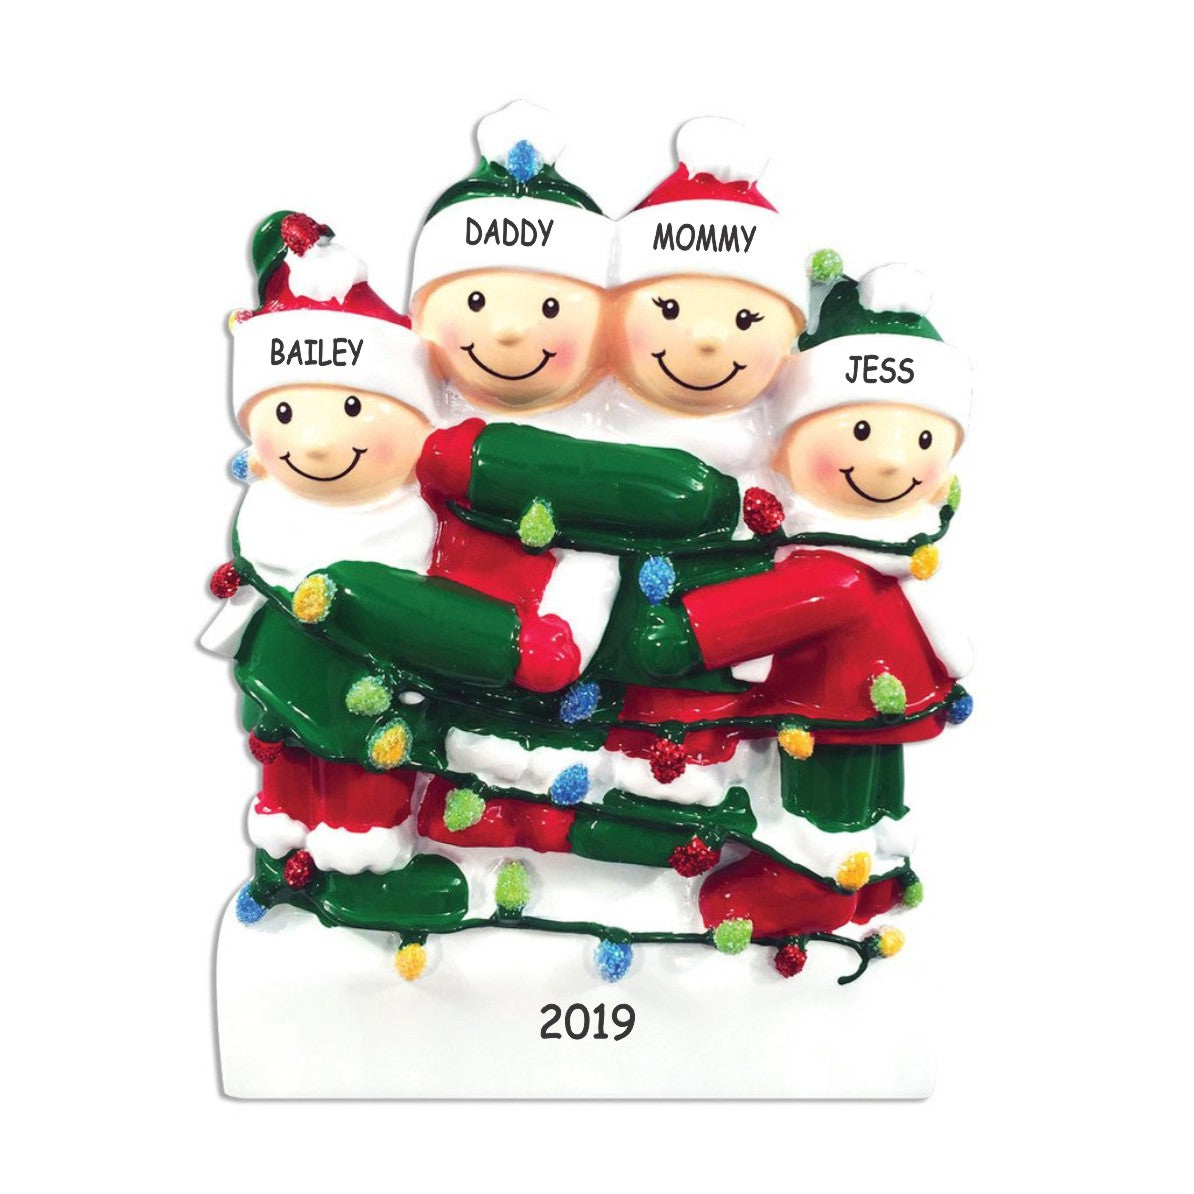 Personalized Tangled in Lights Family Christmas Ornament - Family of 4